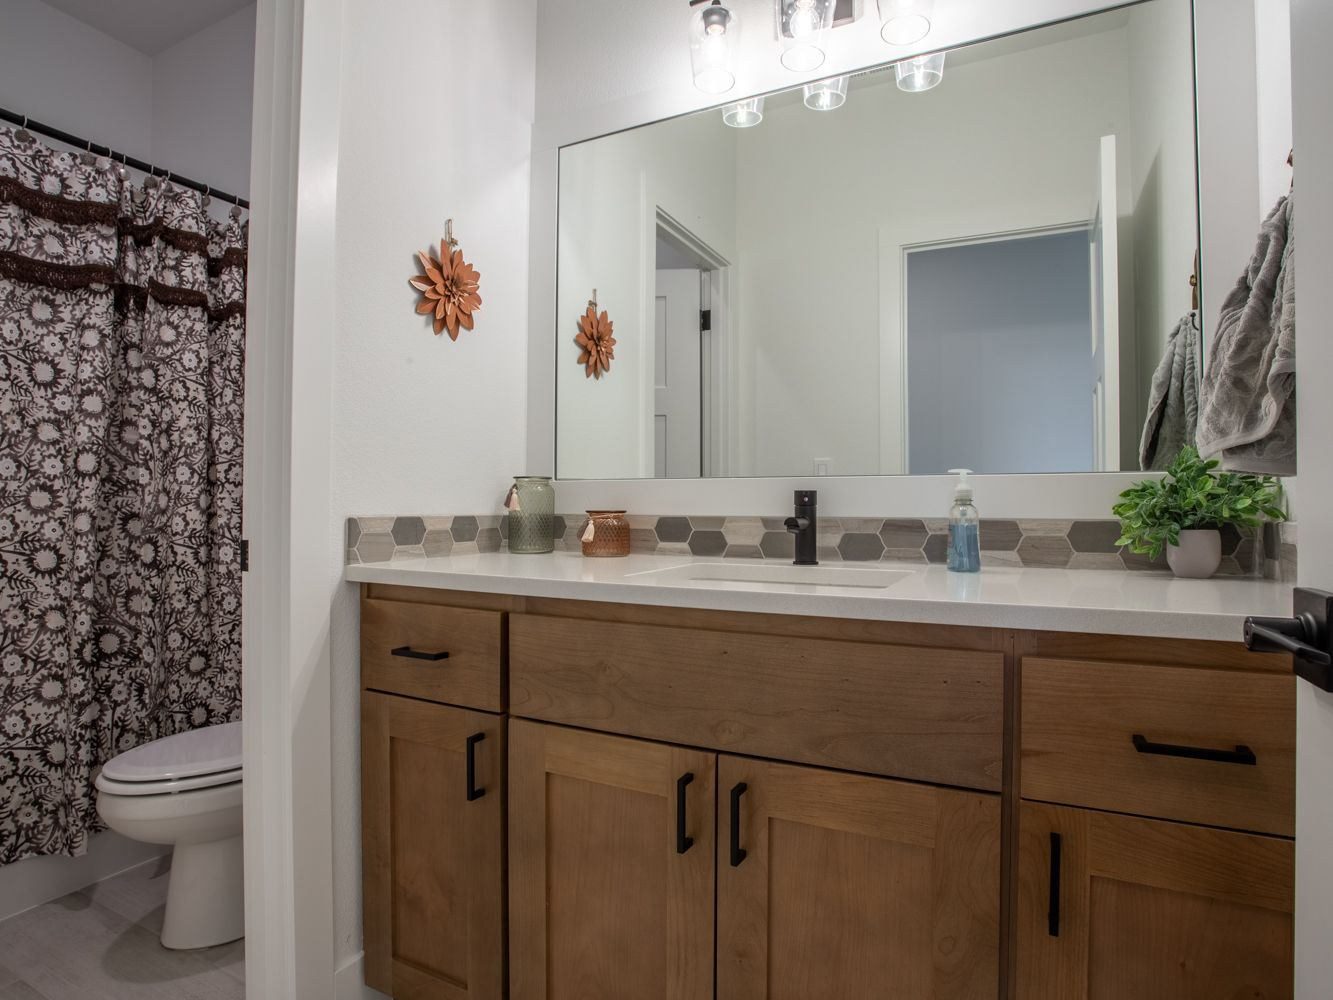 Bathroom featured in the 27618 SW Larkspur Terr By Stone Bridge Homes NW in Portland-Vancouver, OR